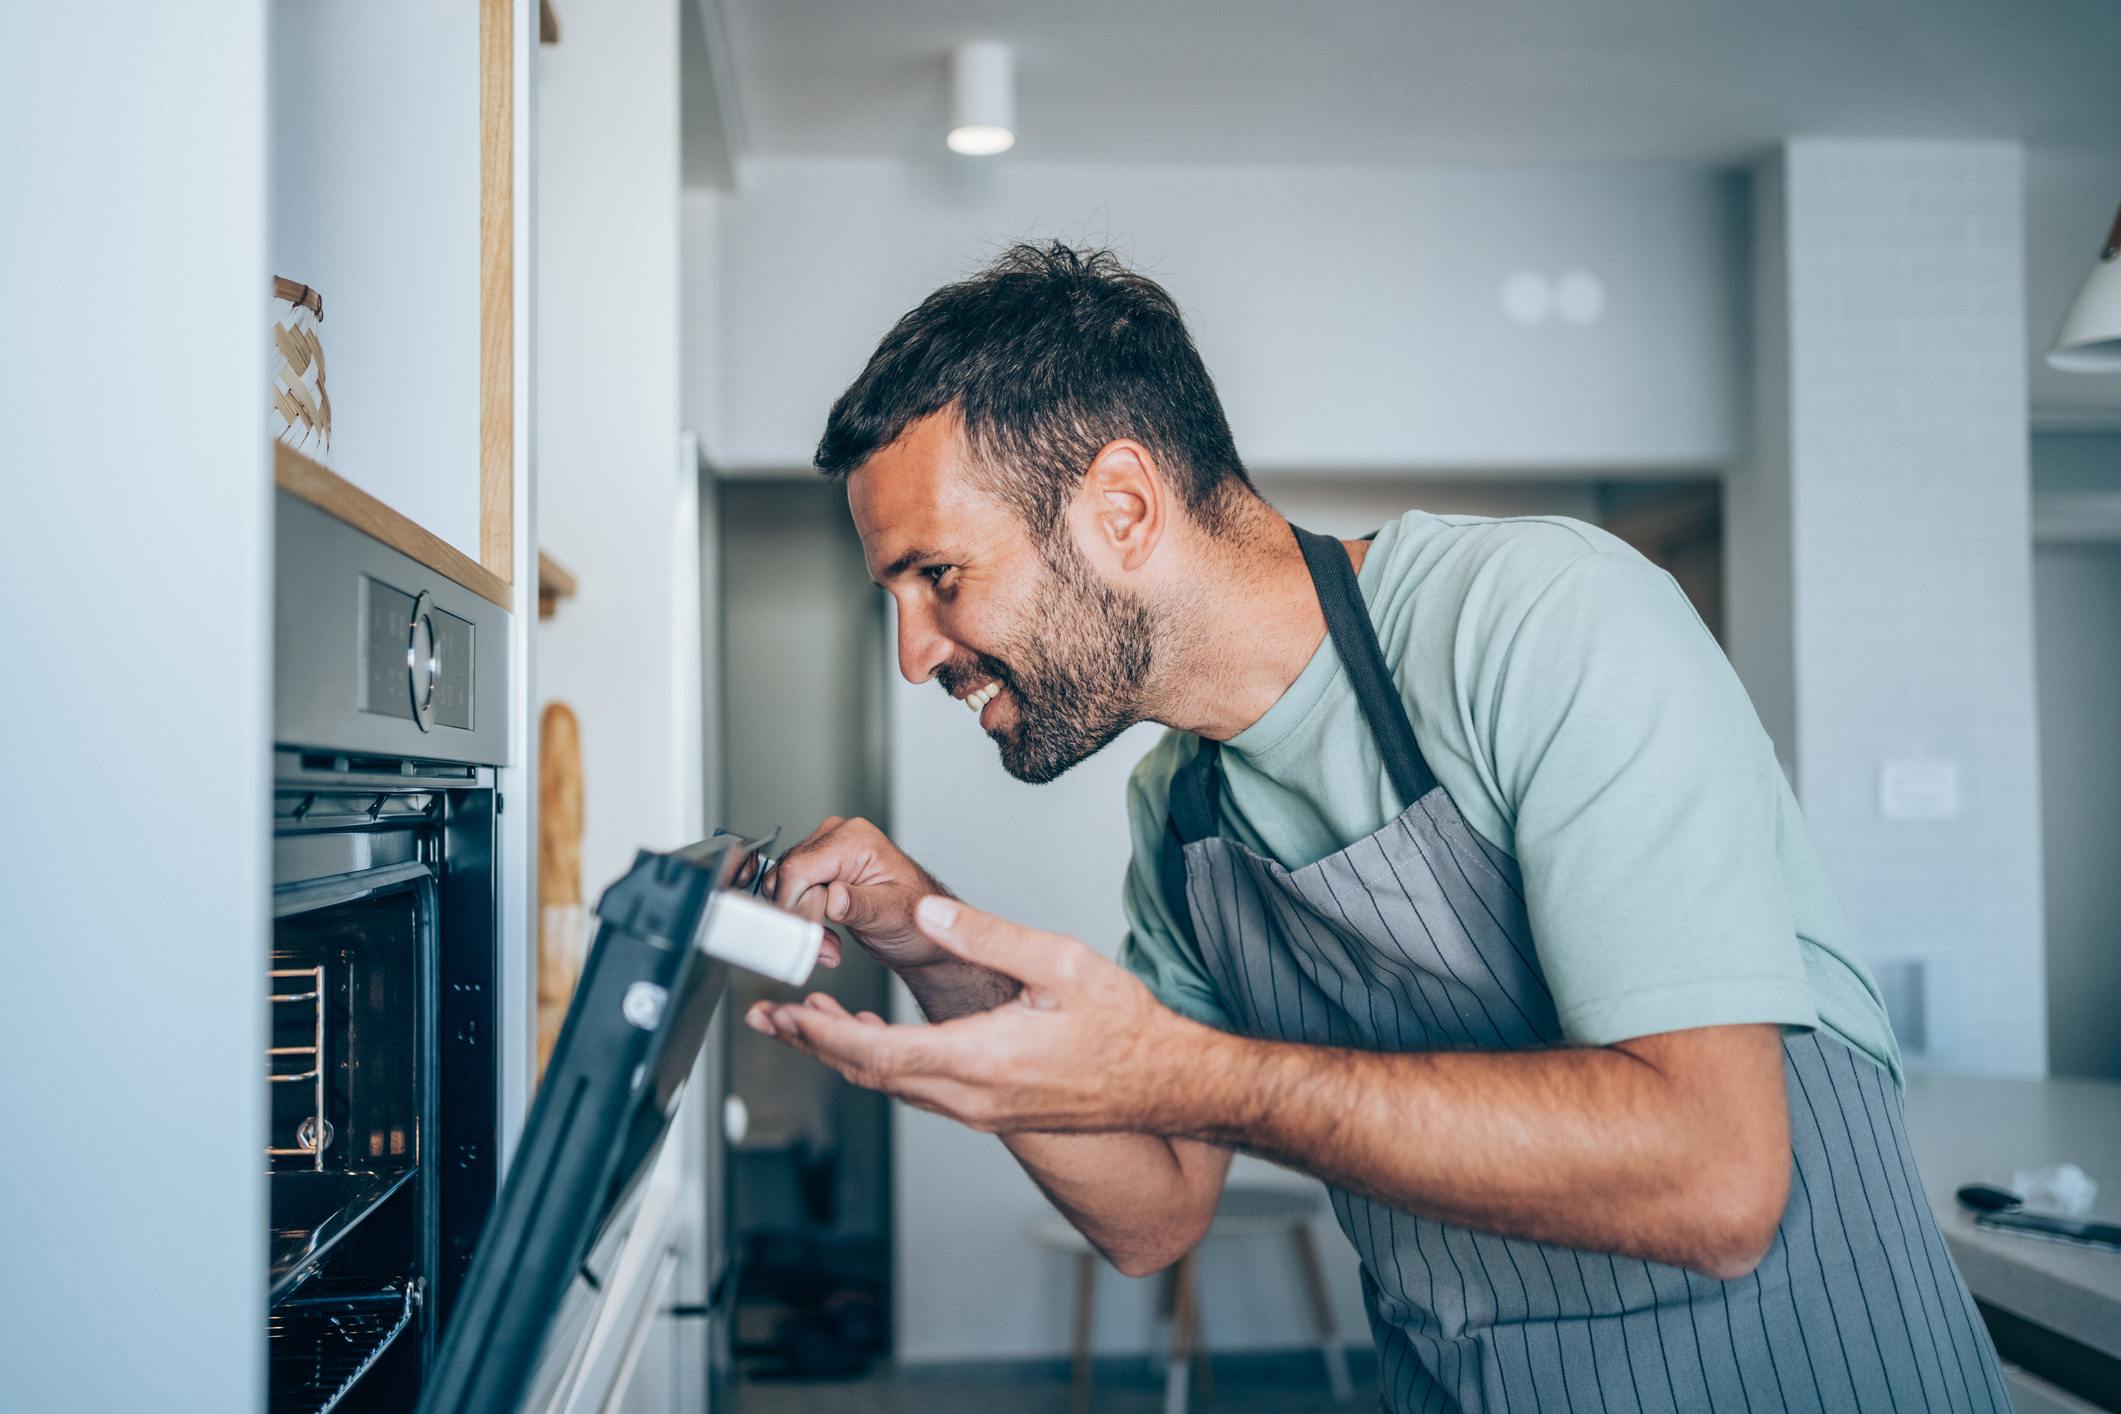 A guy smiling and opening his oven